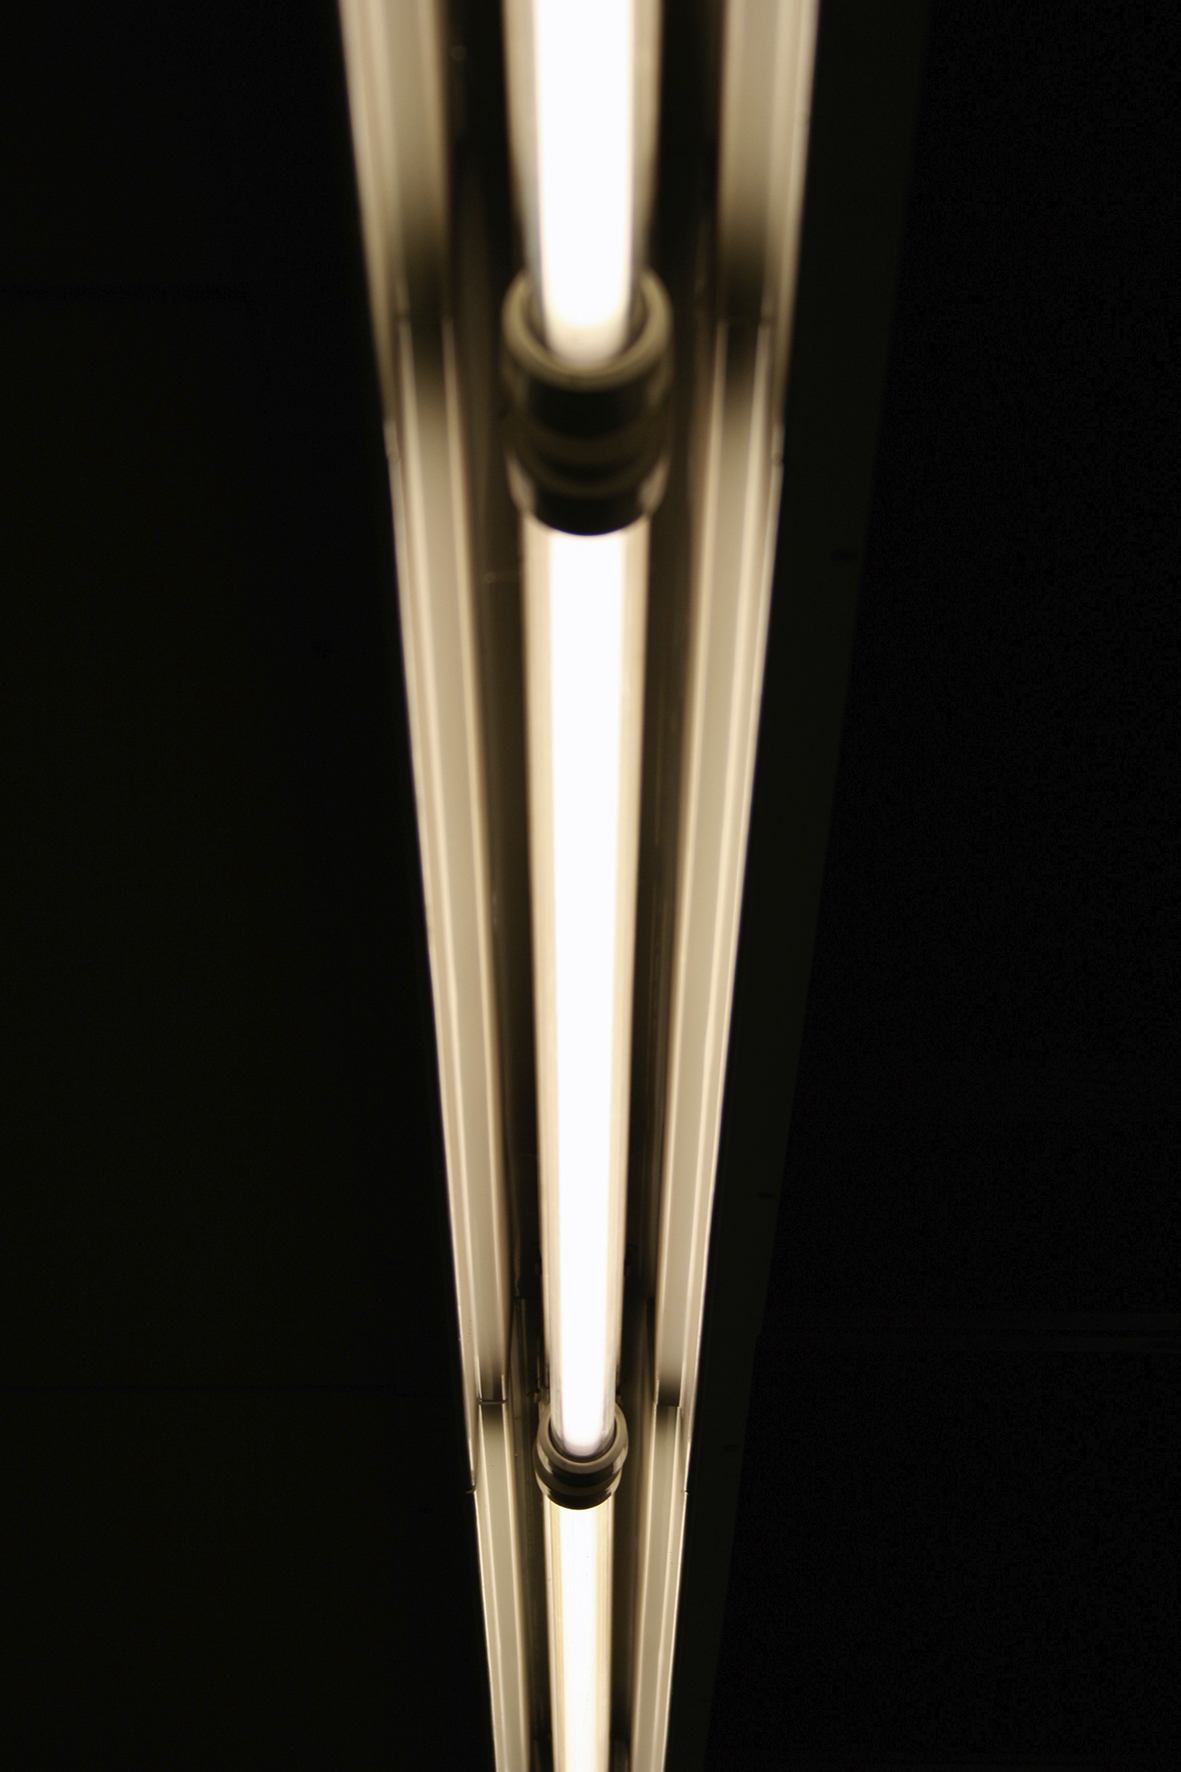 energy draining fluorescent tube lights